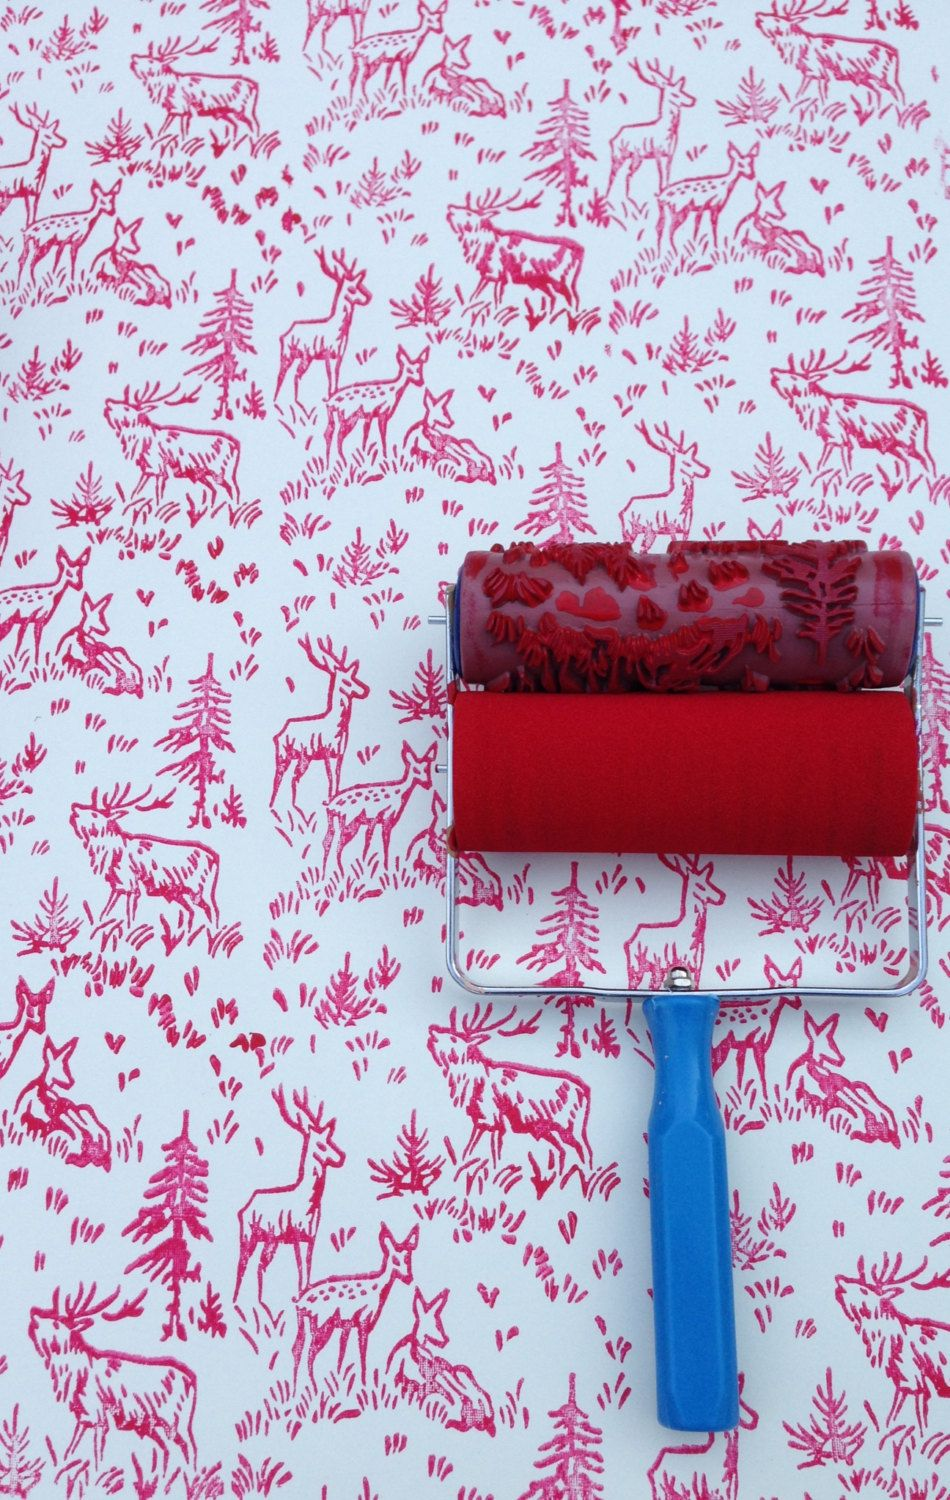 Wallpaper Paint Roller patterned paint roller in aspen frost design from not wallpaper